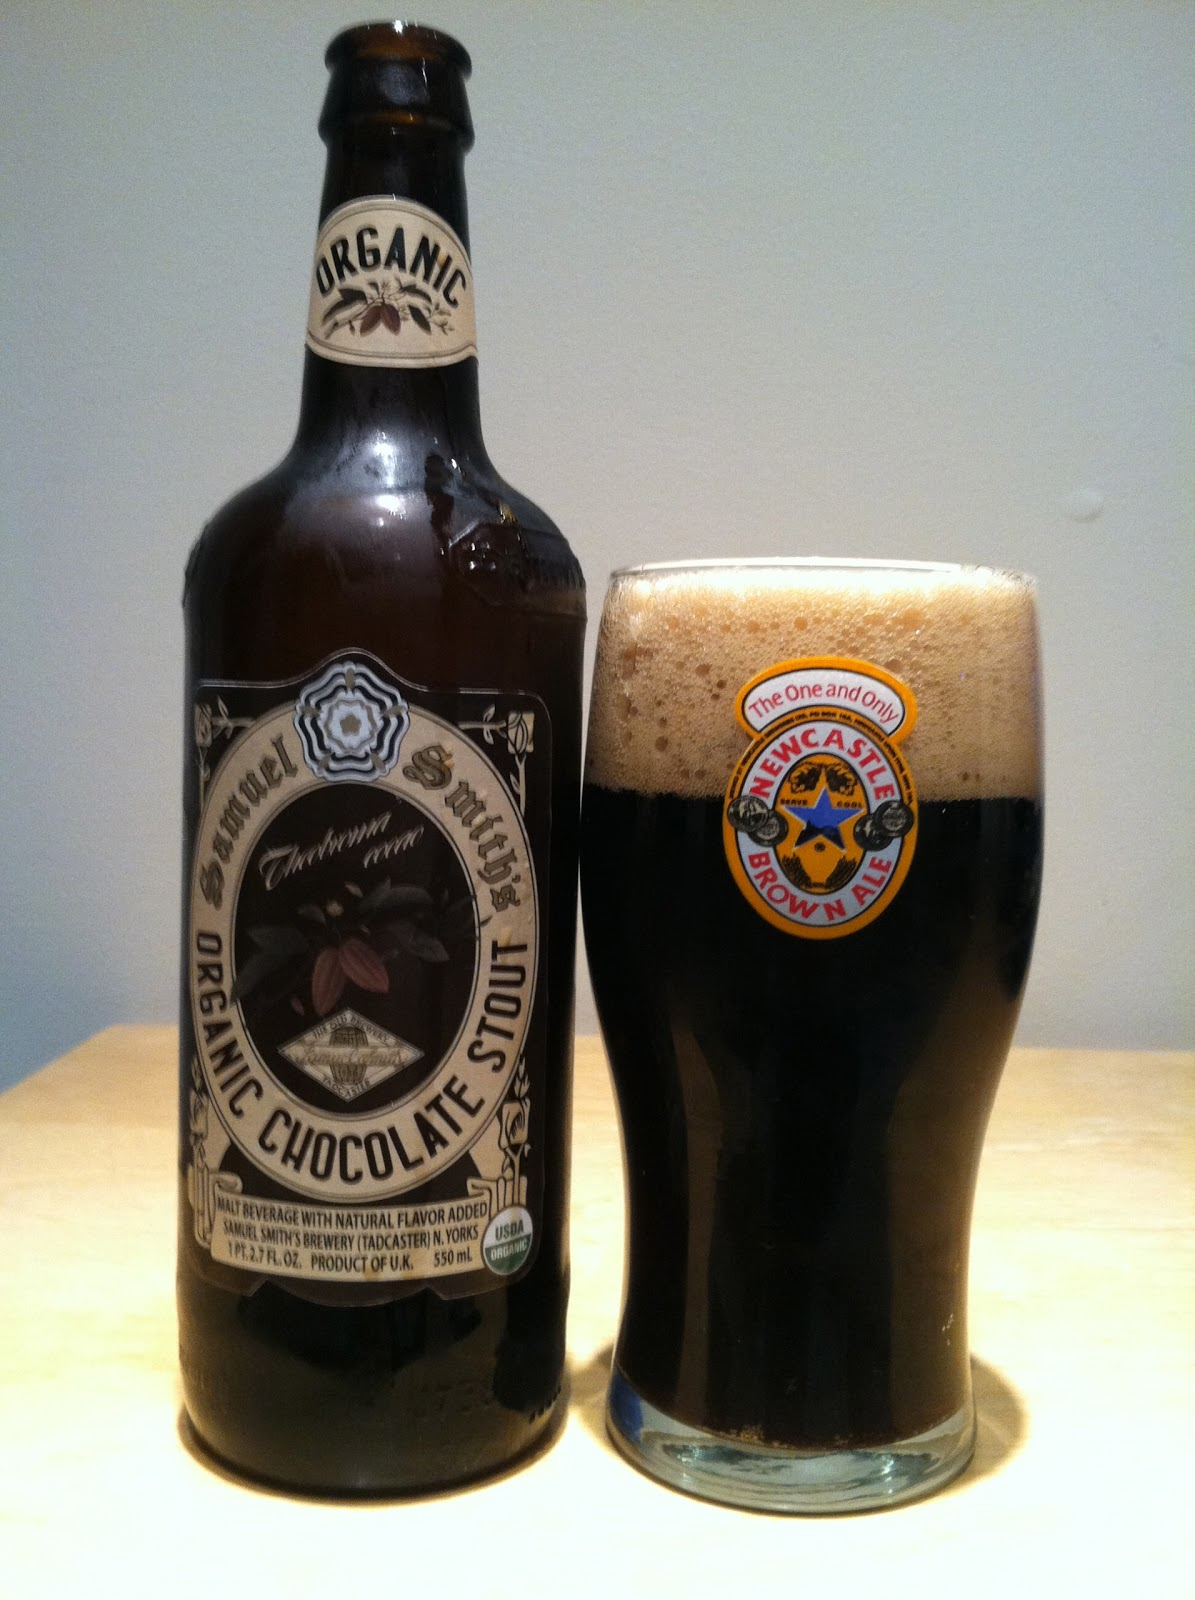 The Best Beer Blog: Samuel Smith's Organic Chocolate Stout